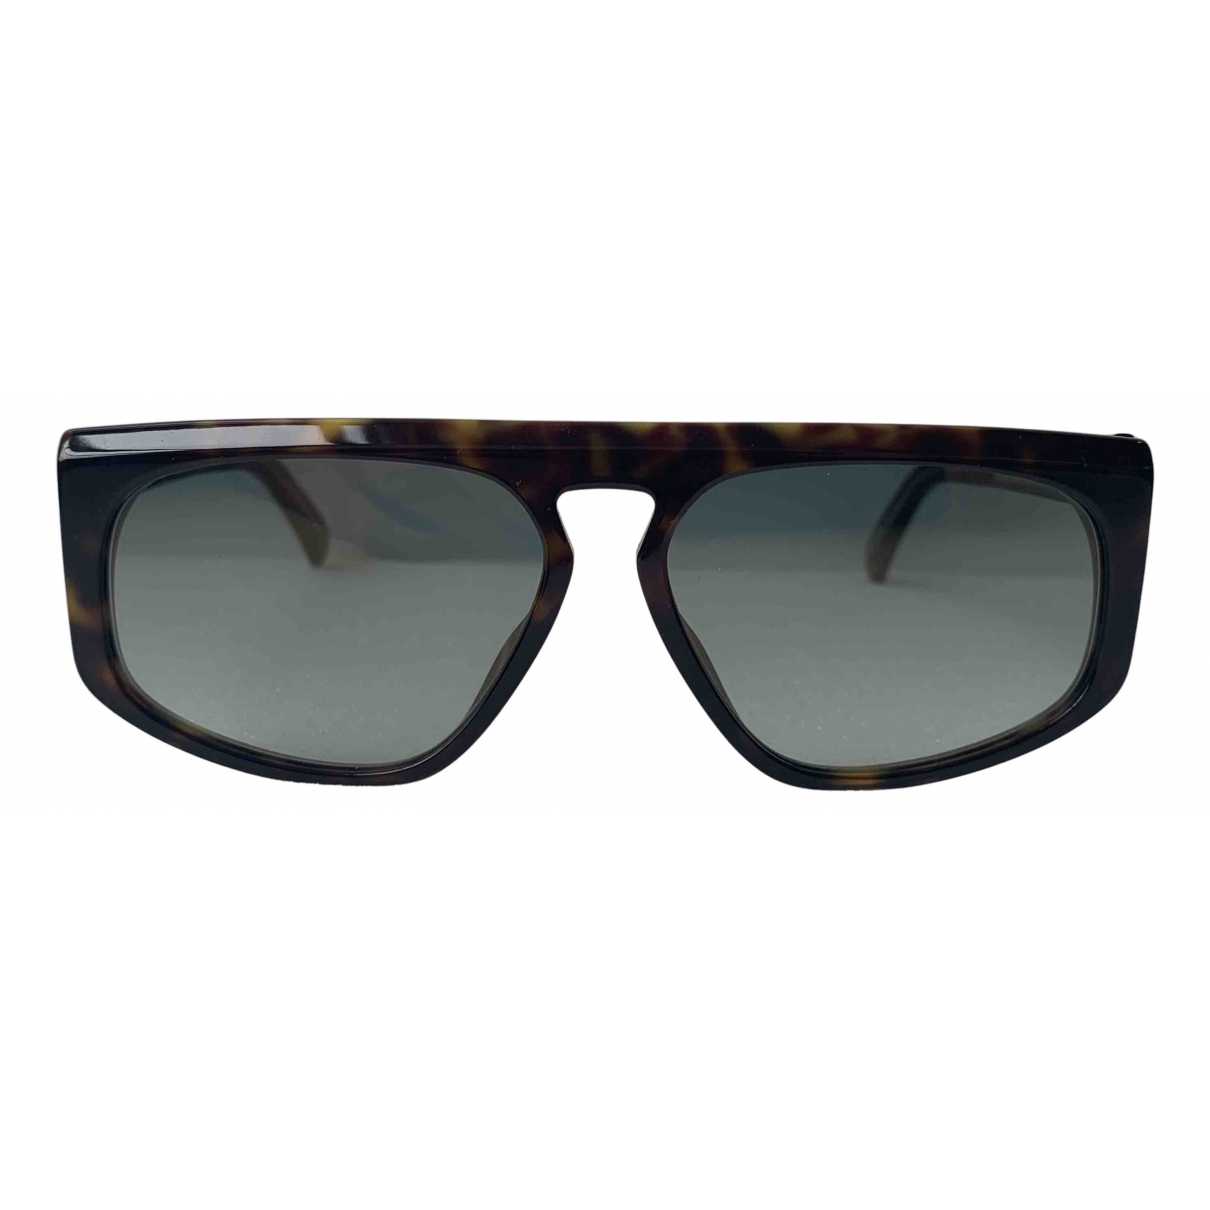 Givenchy N Brown Sunglasses for Women N